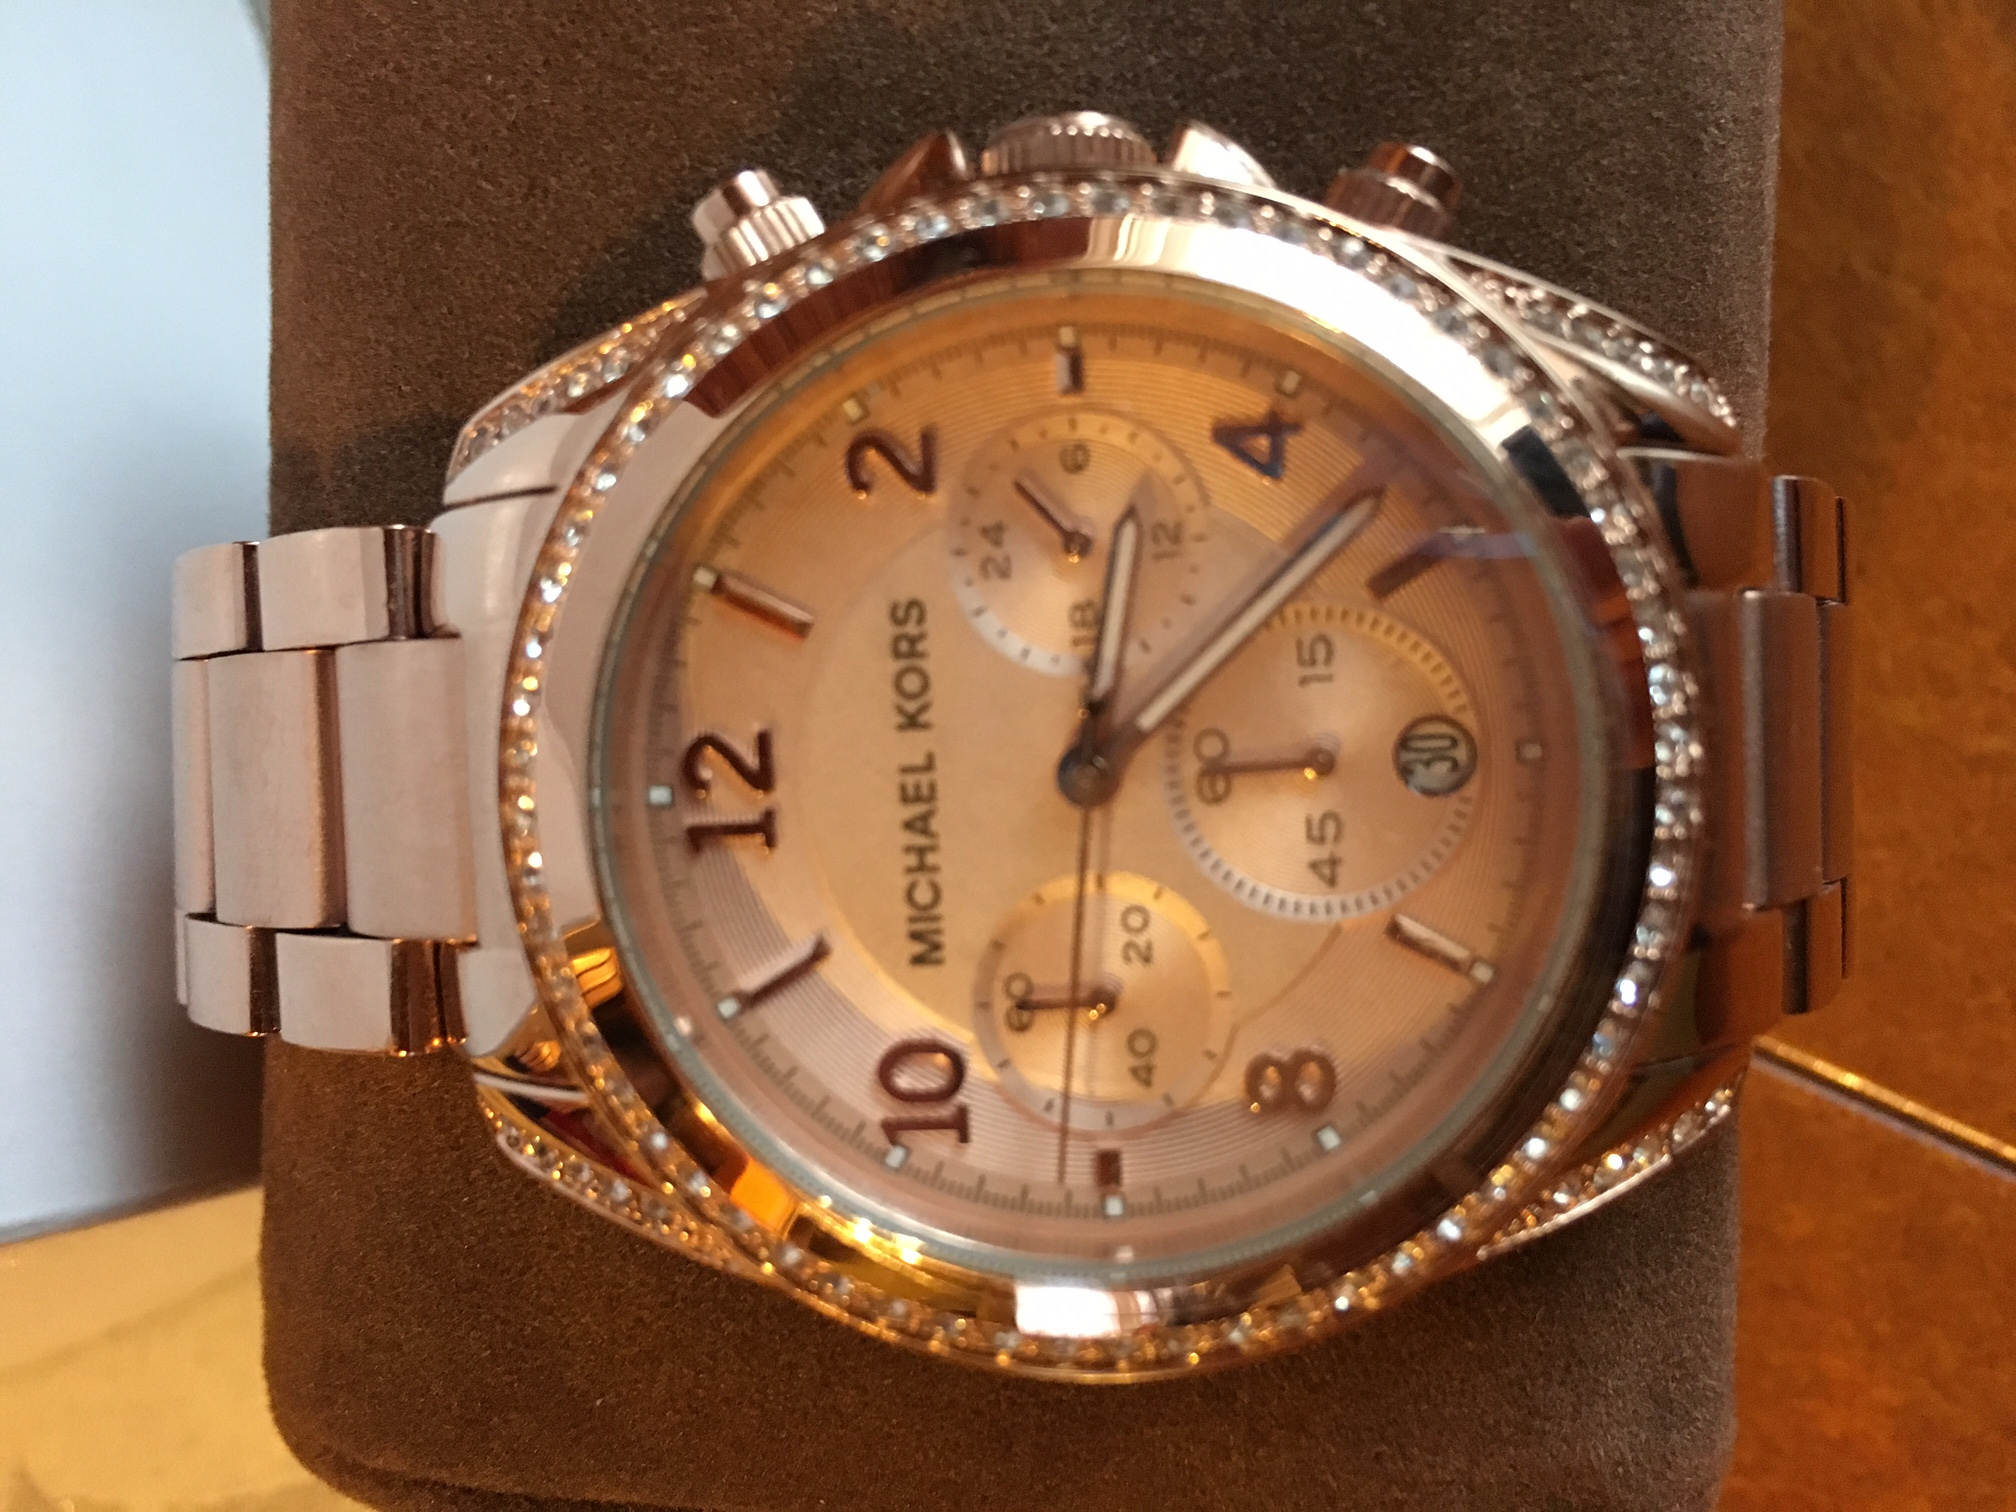 c844478ae8cd She love the rose gold color. The next day delivery to Slovenia. Very good  service with Price Match.